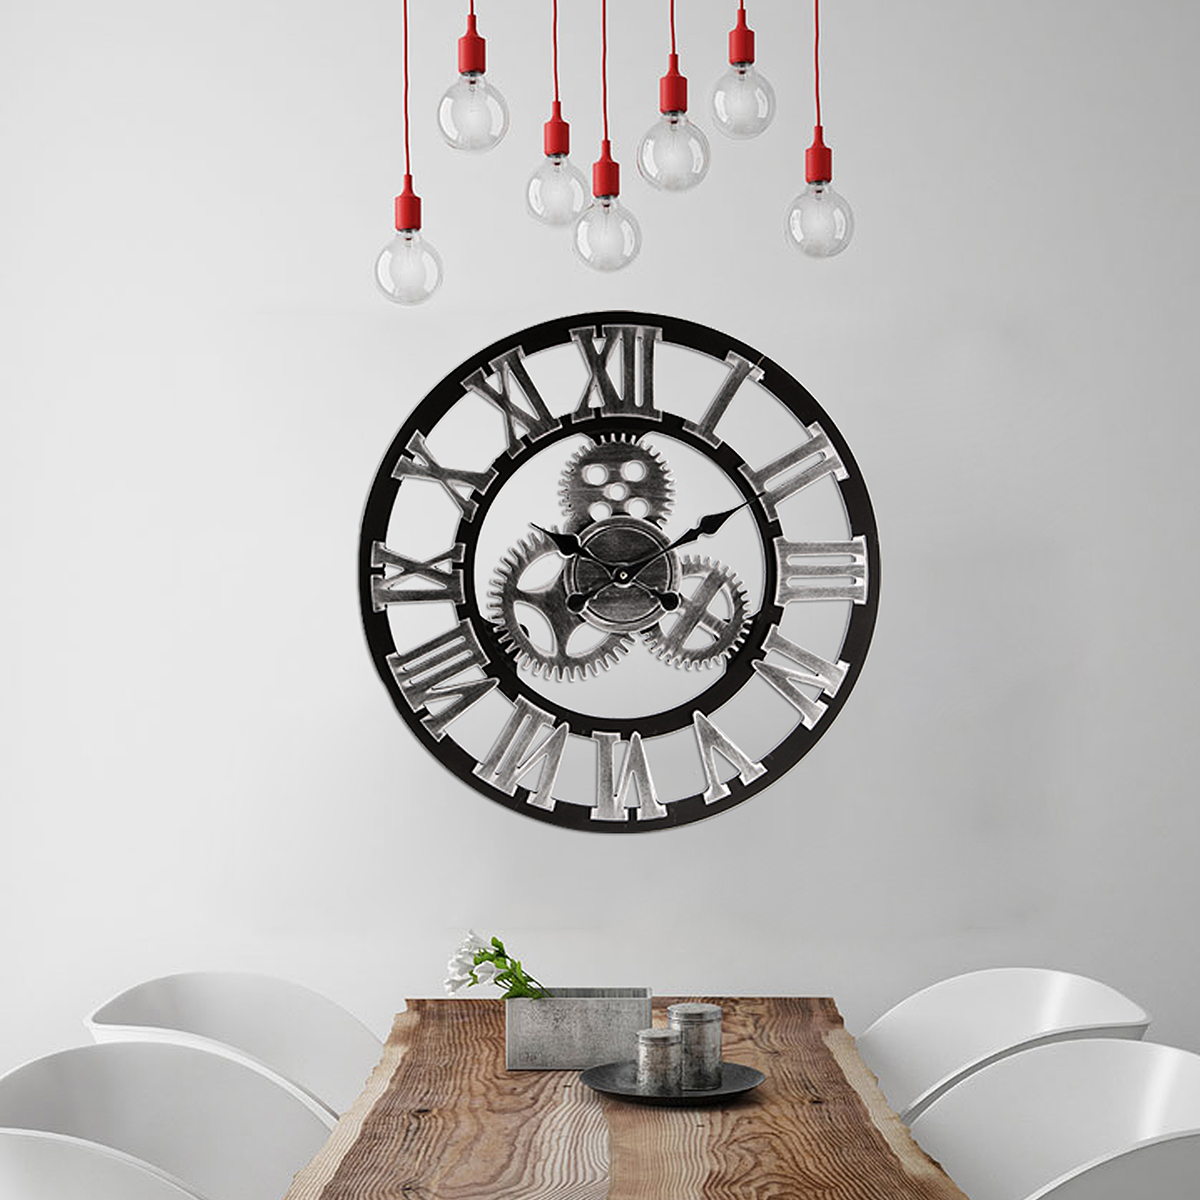 24 inch Industrial 3D Gear Round Wall Clock Vintage Retro Wooden Rustic Home Art Decoration